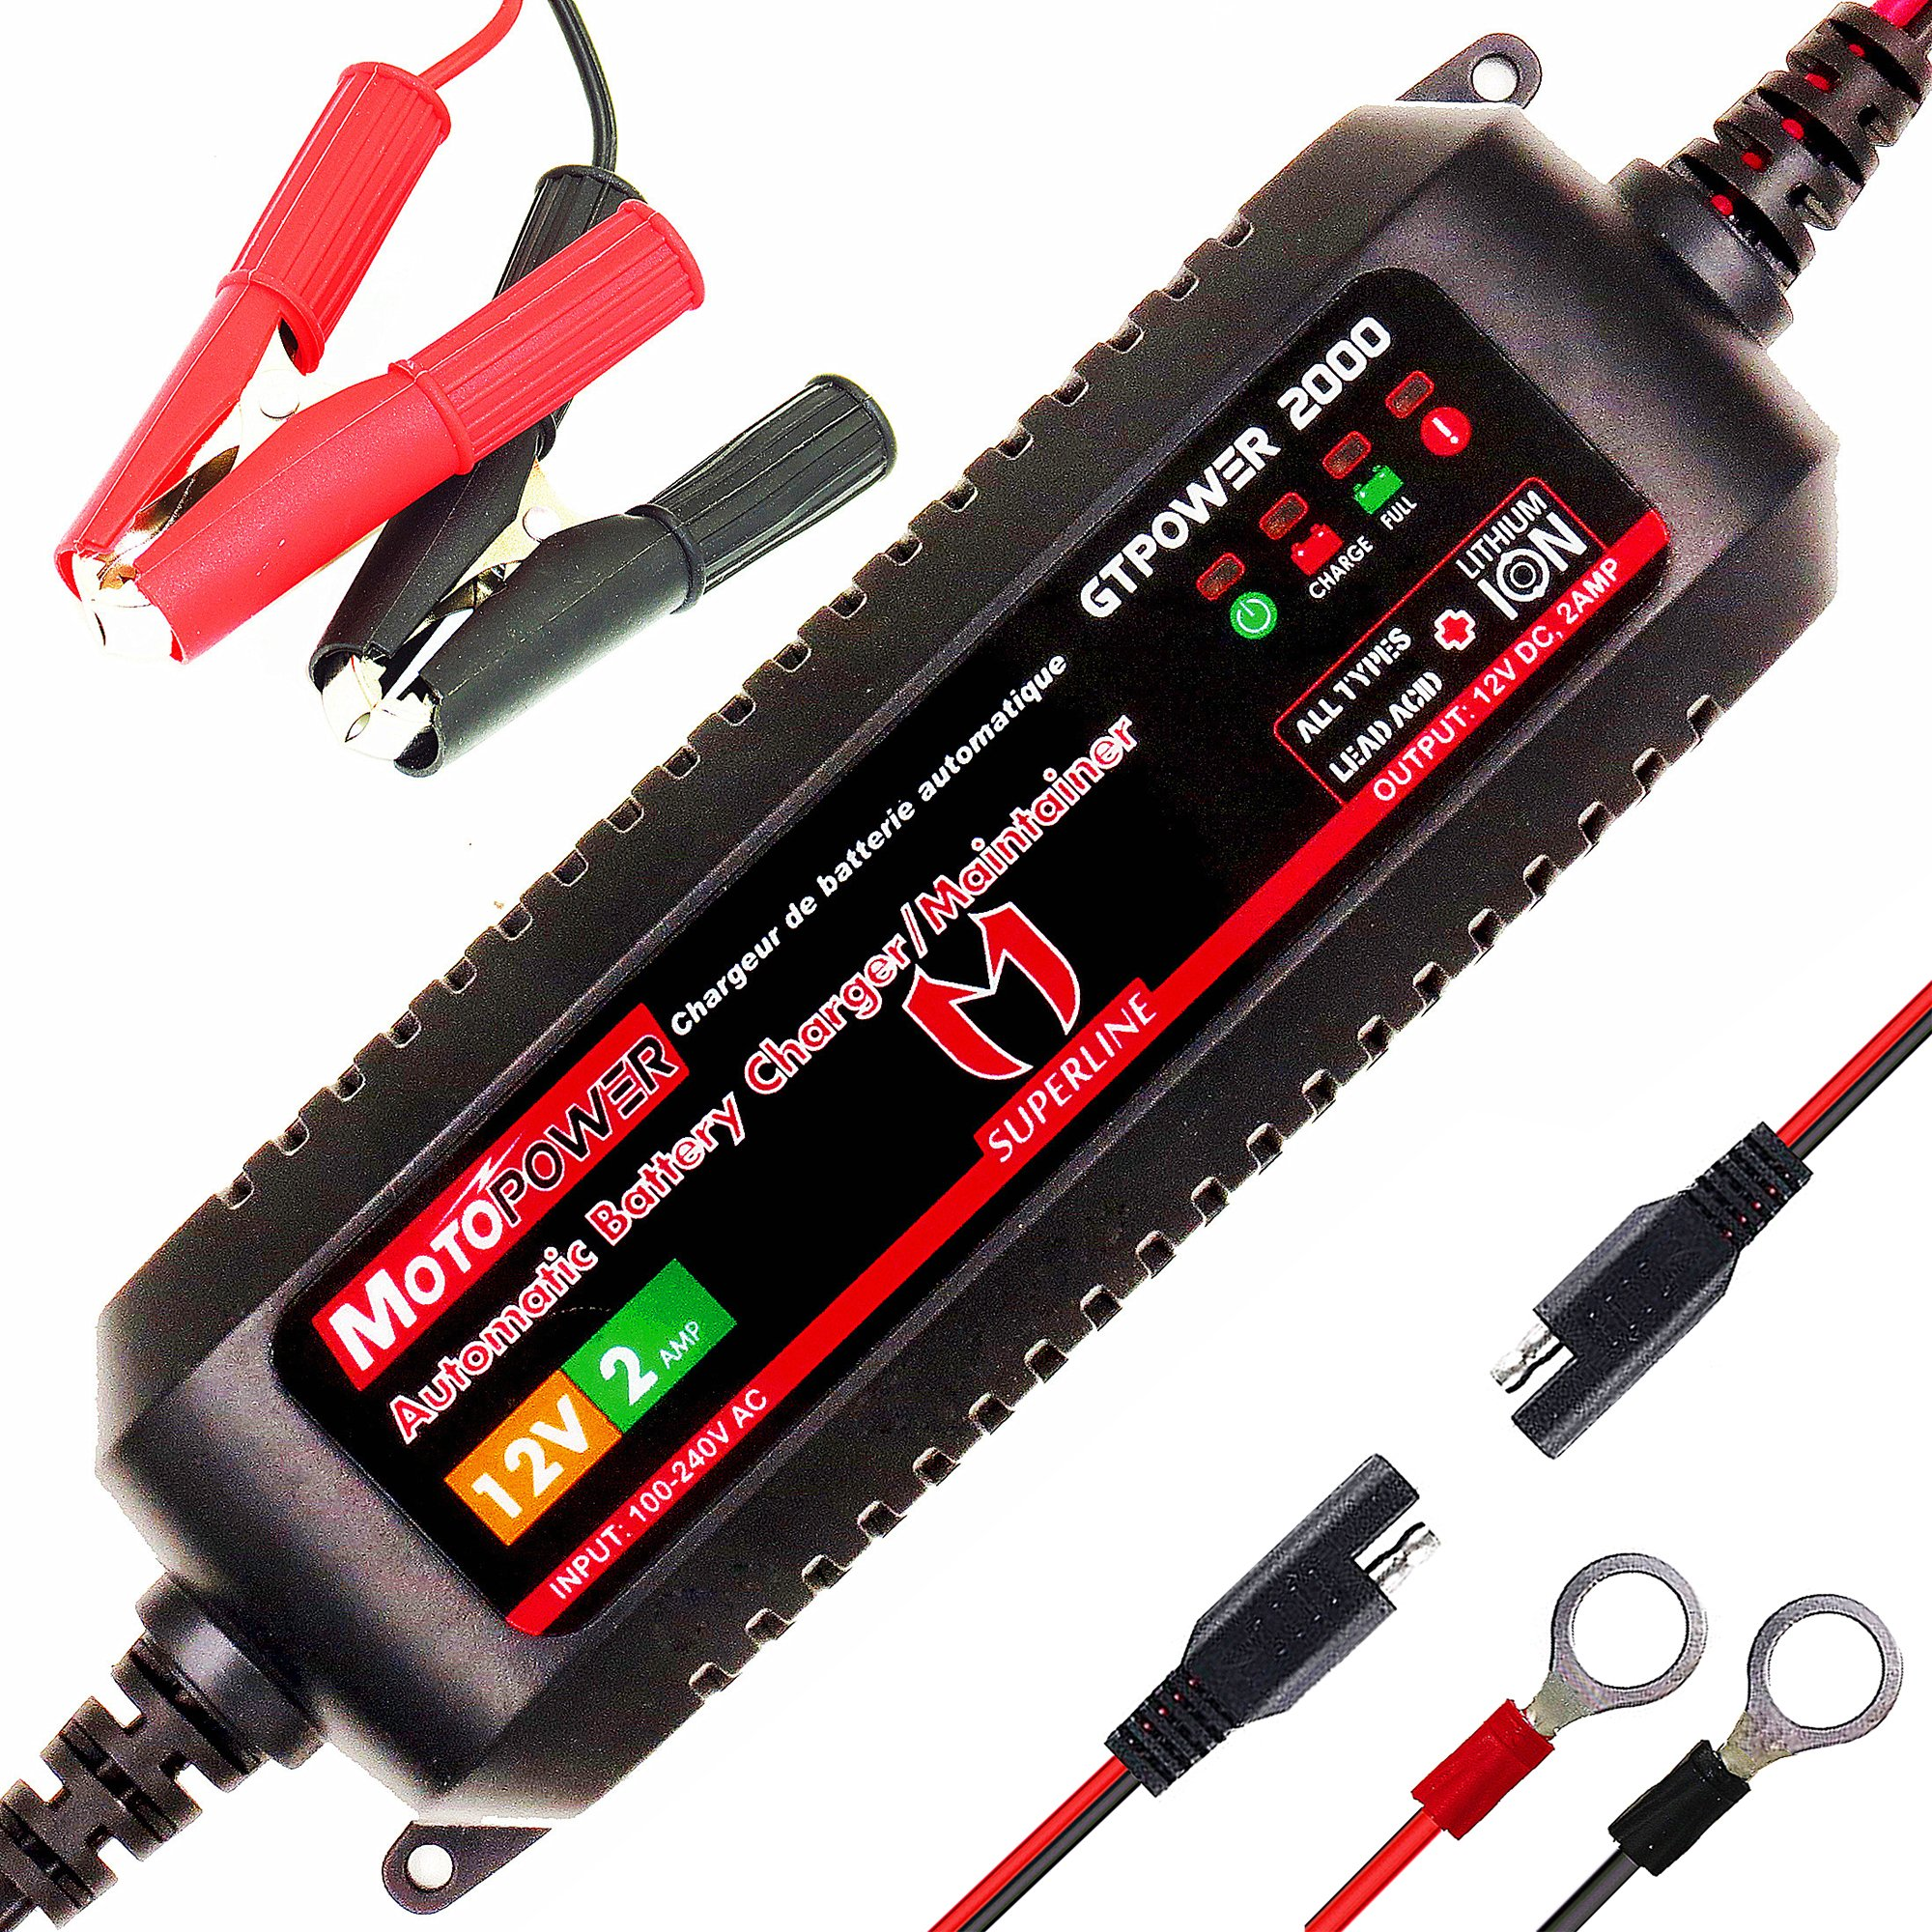 MOTOPOWER MP00207A 12V 2Amp Smart Automatic Battery Charger/Maintainer for Both Lead Acid Batteries and Lithium Ion Batteries